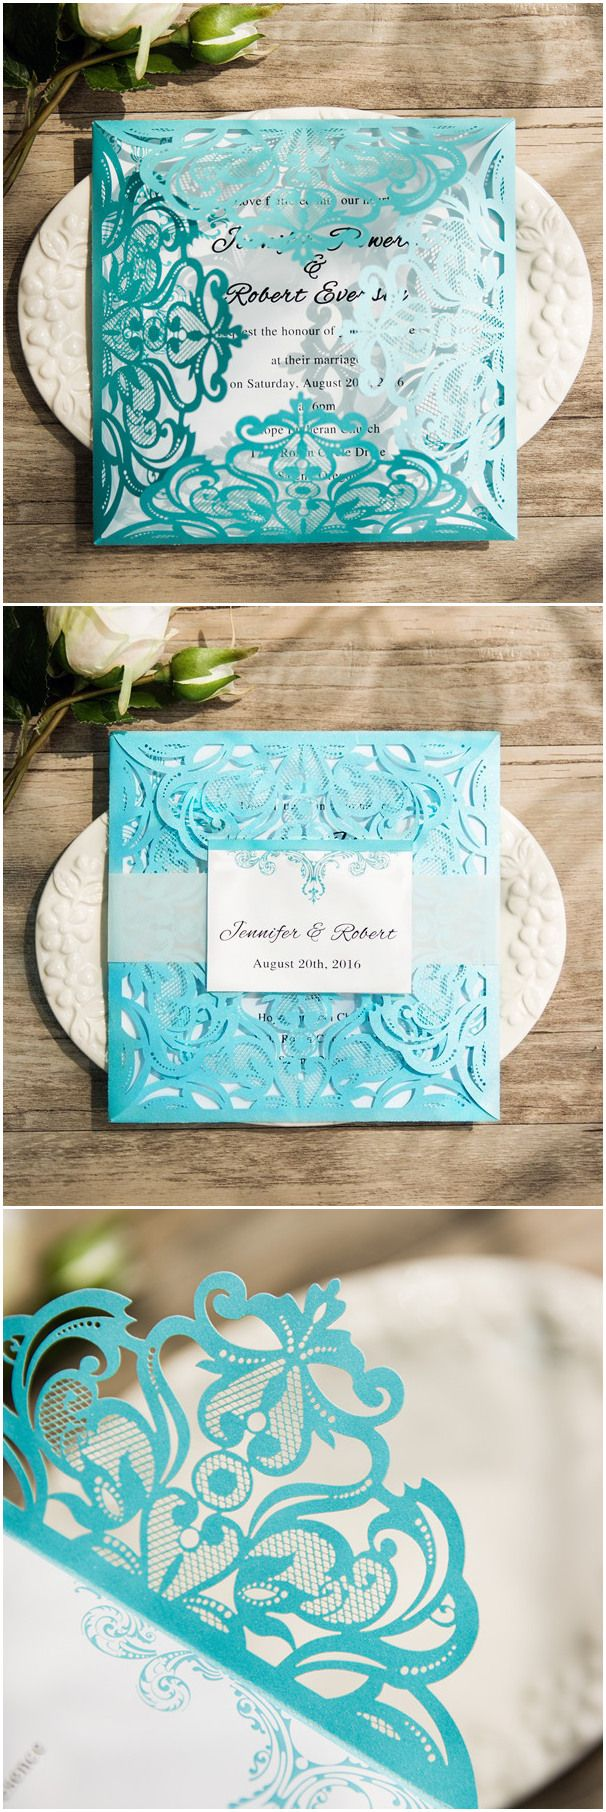 tiffany blue swirl laser cut wedding invitation